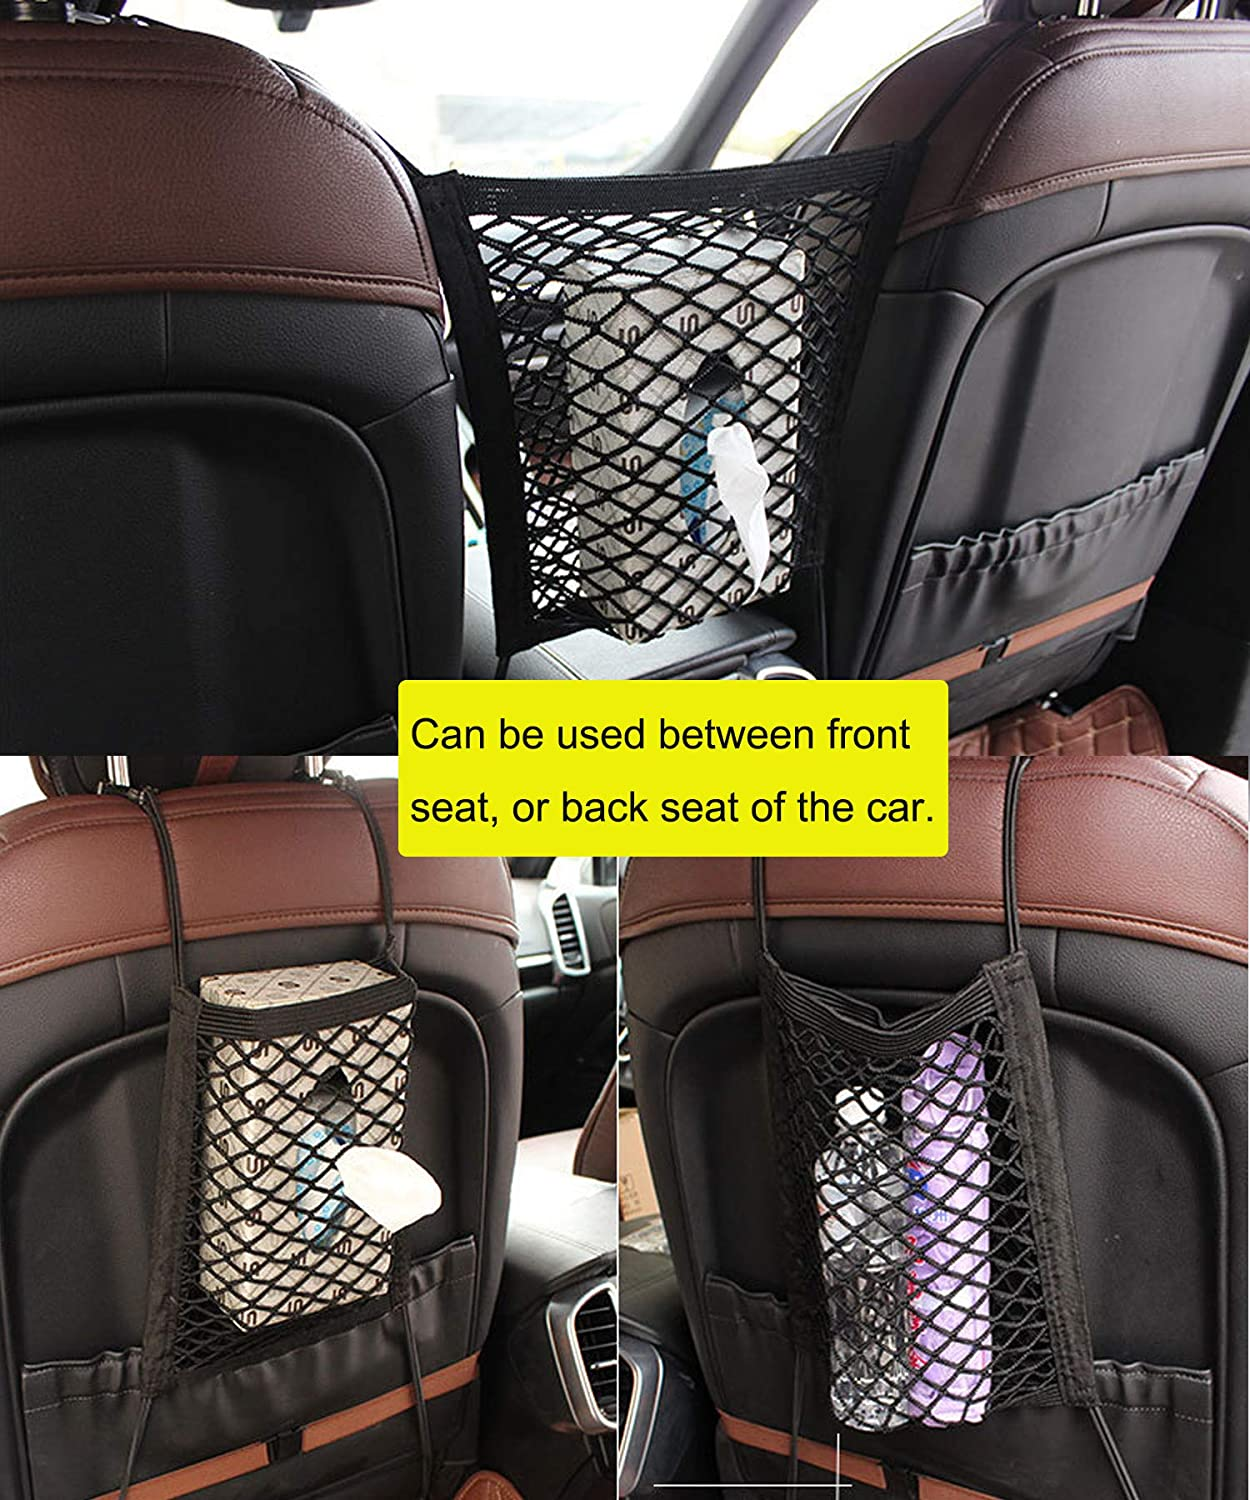 Dual-layer Car Mesh Organizer Storage Net Backseat Cargo Net Bag Seat Back Organizer Cargo Nets for Car Front Seat Backseat Pockets Cargo Tissue Purse Holder Pets Kids Barrier